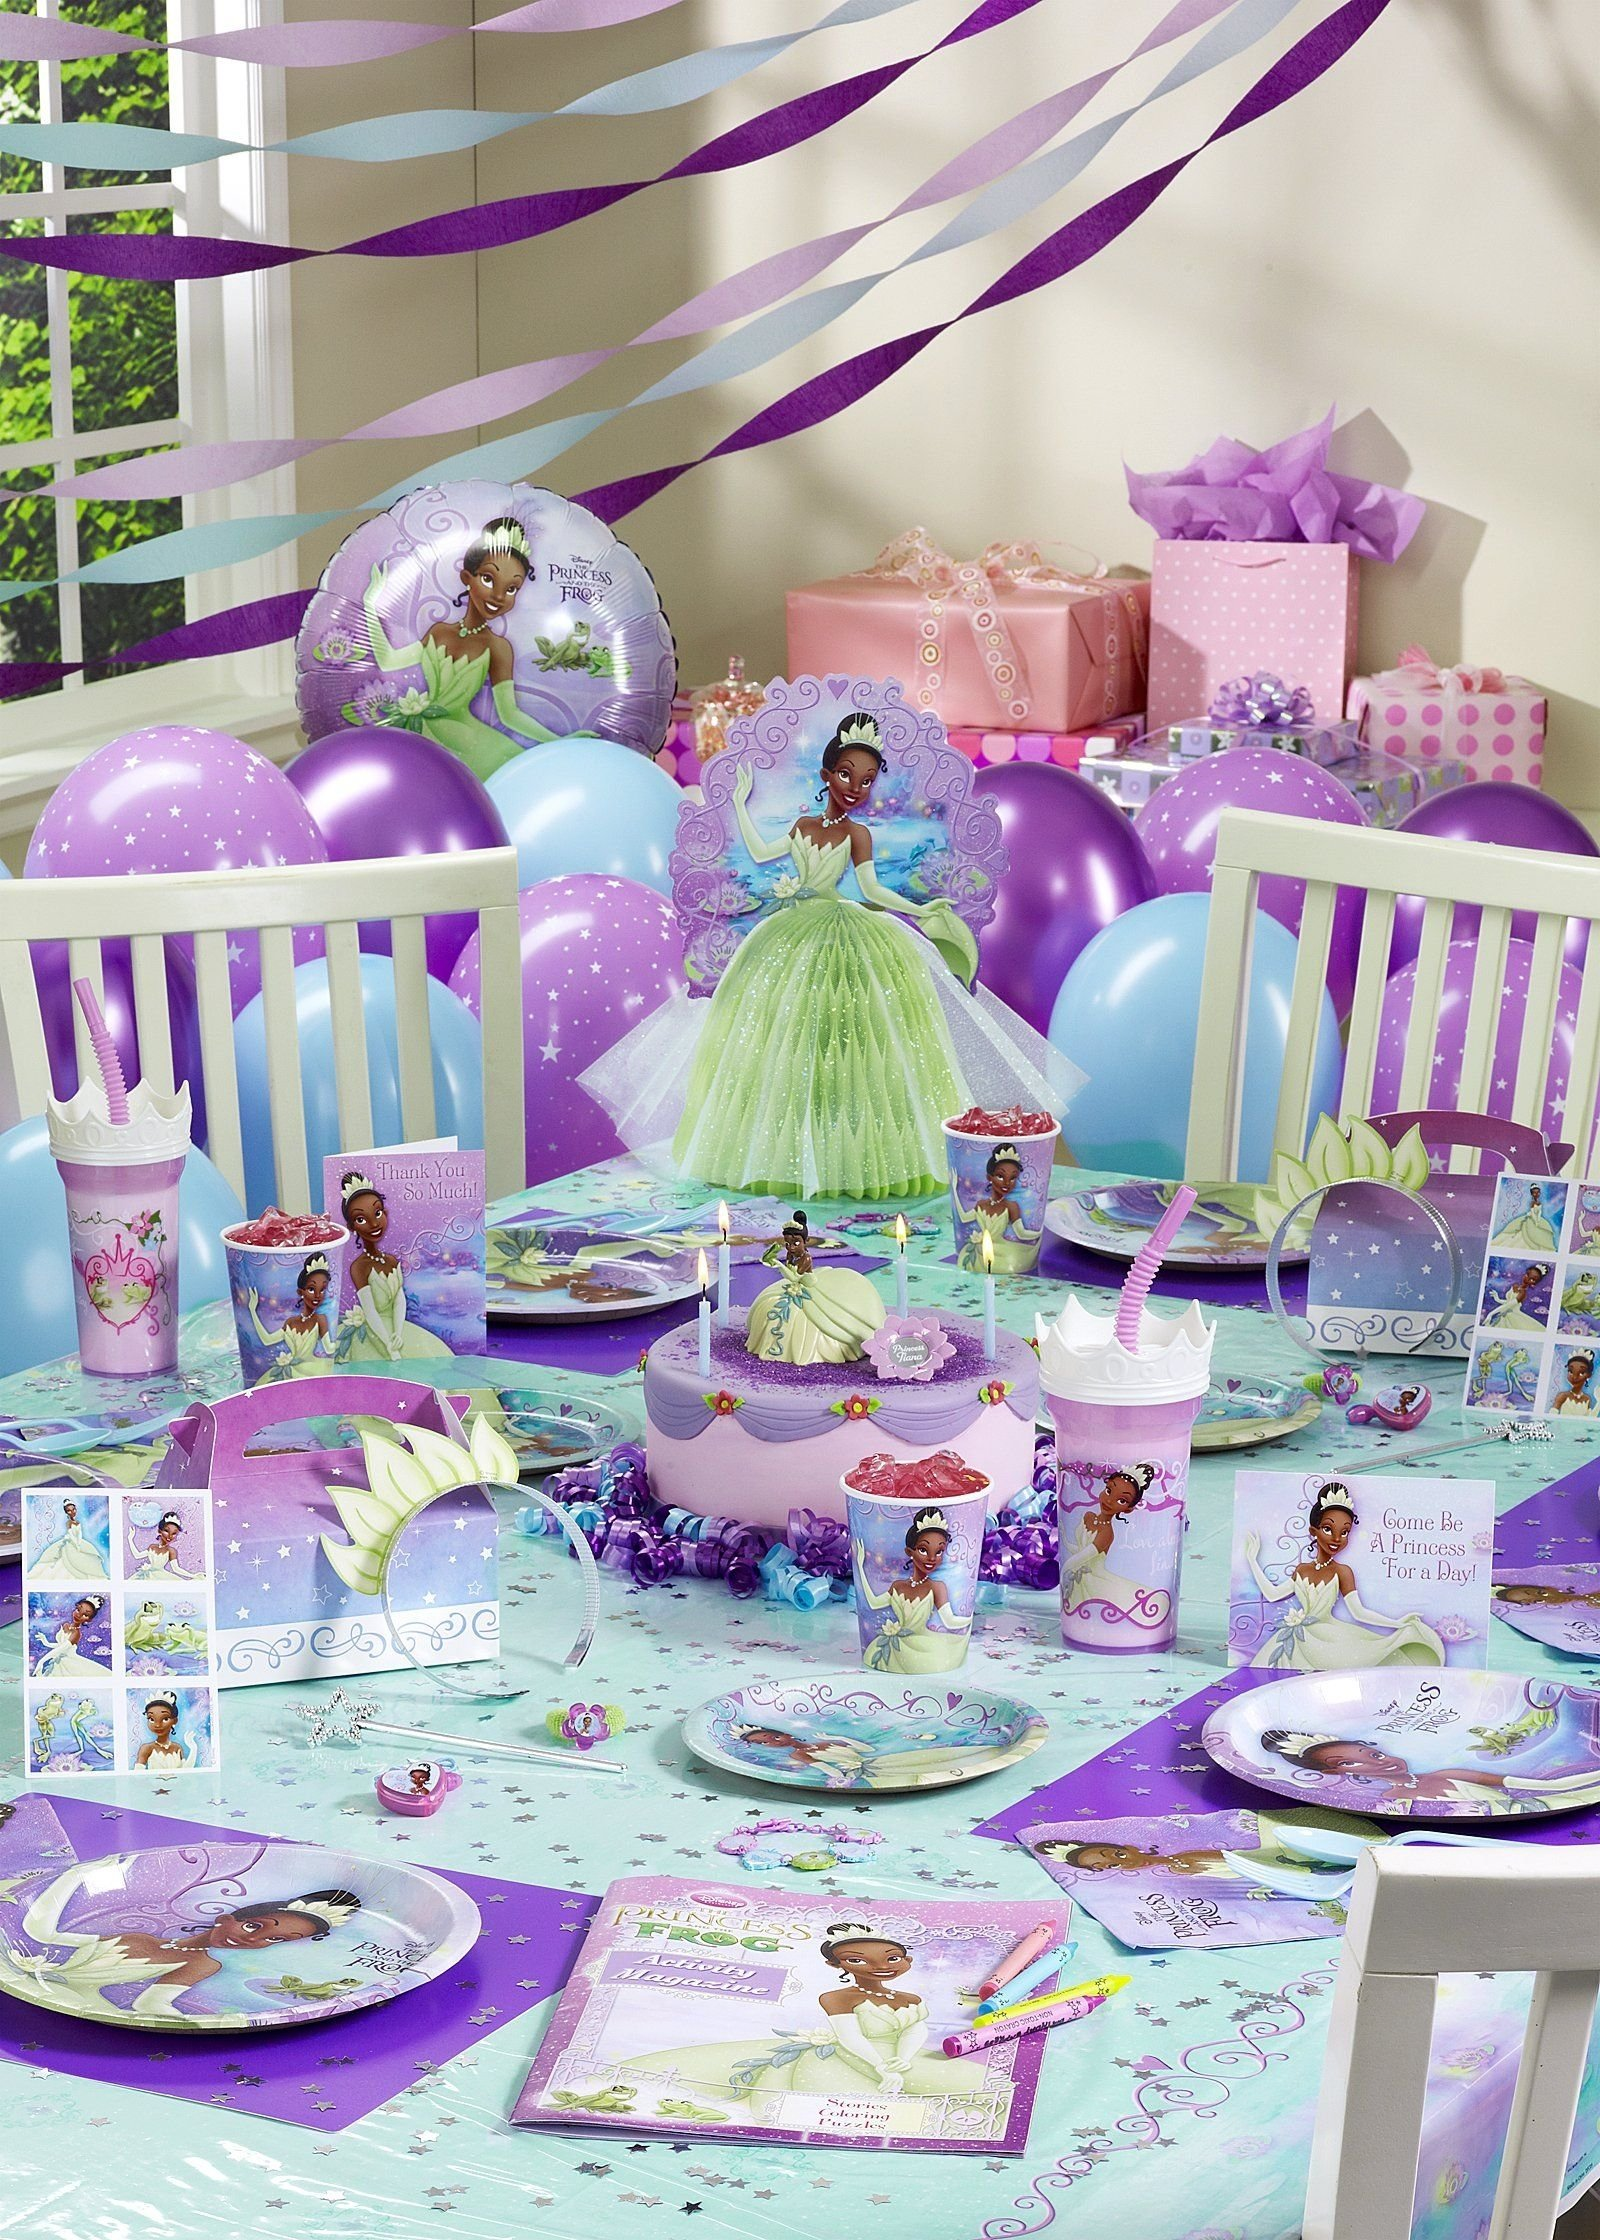 10 Lovable Princess And The Frog Birthday Ideas disney princess and the frog ultimate party pack for 8 baby stuff 1 2020